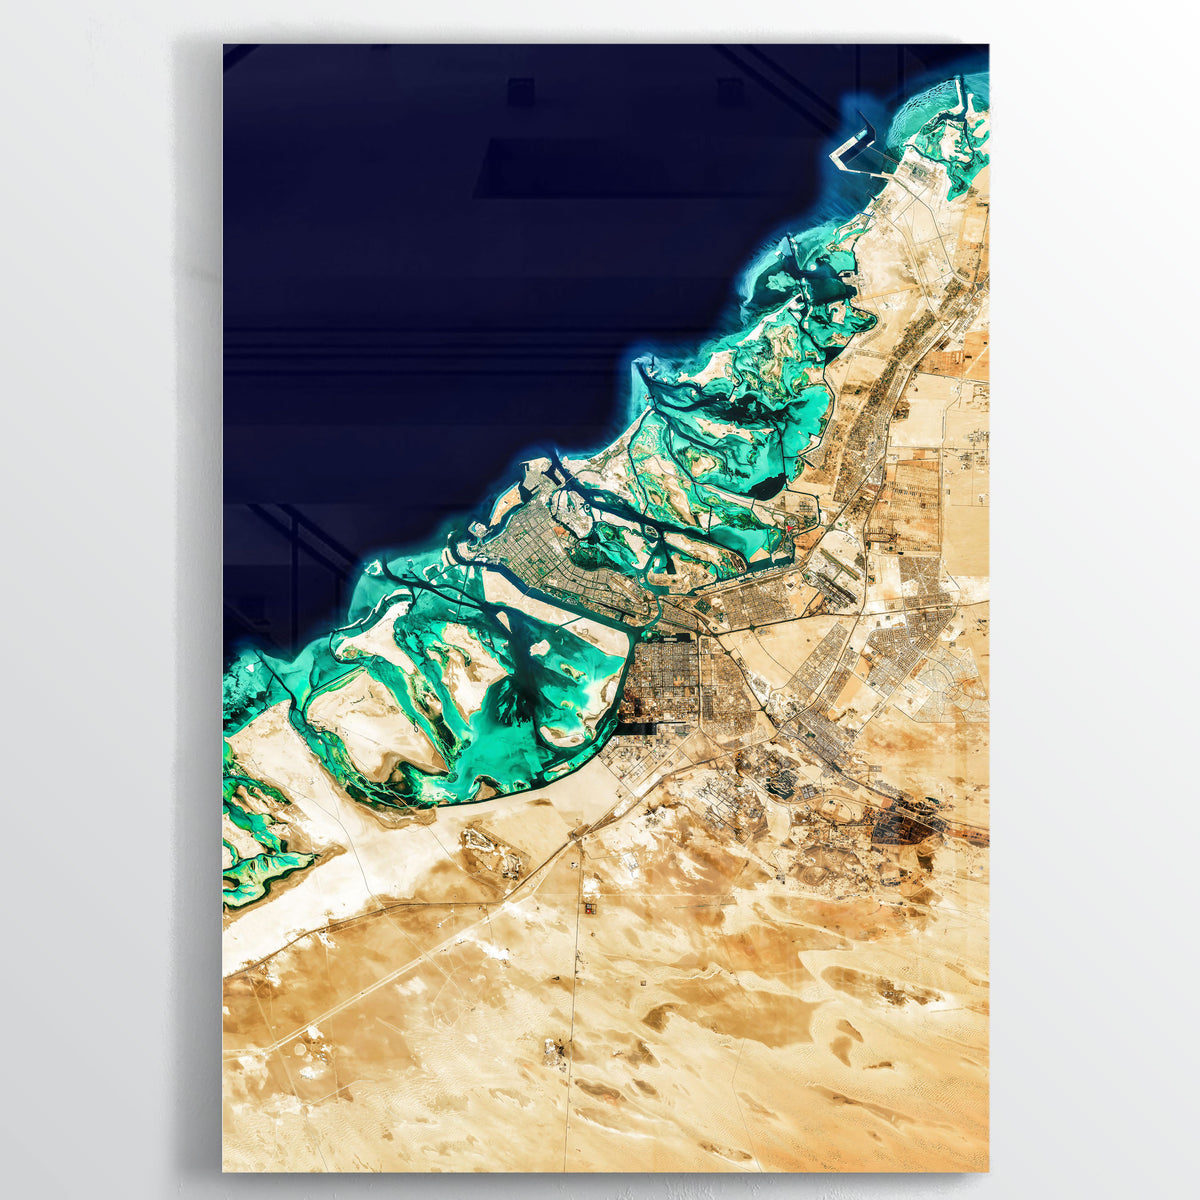 Abu Dhabi Earth Photography - Floating Acrylic Art - Point Two Design